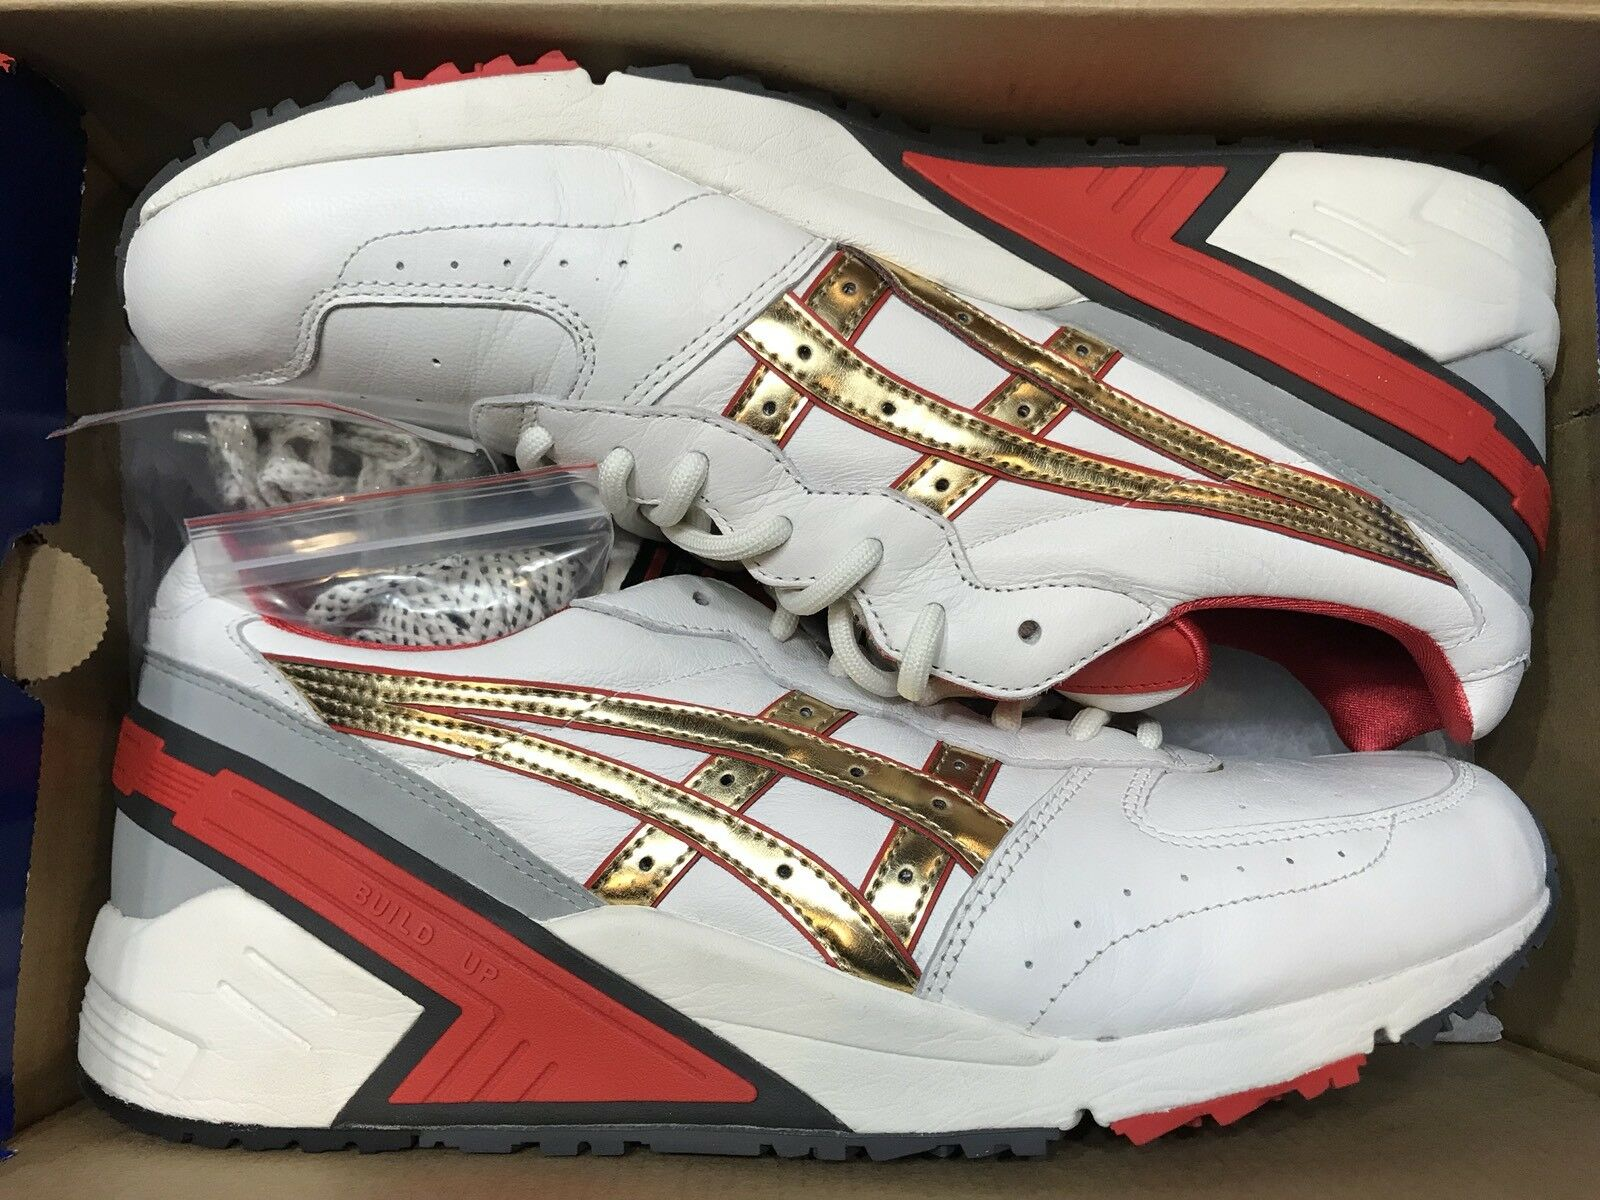 Asics Tiger Gel Sight World Challenger Off White Red gold H500L-0294 Sz 9